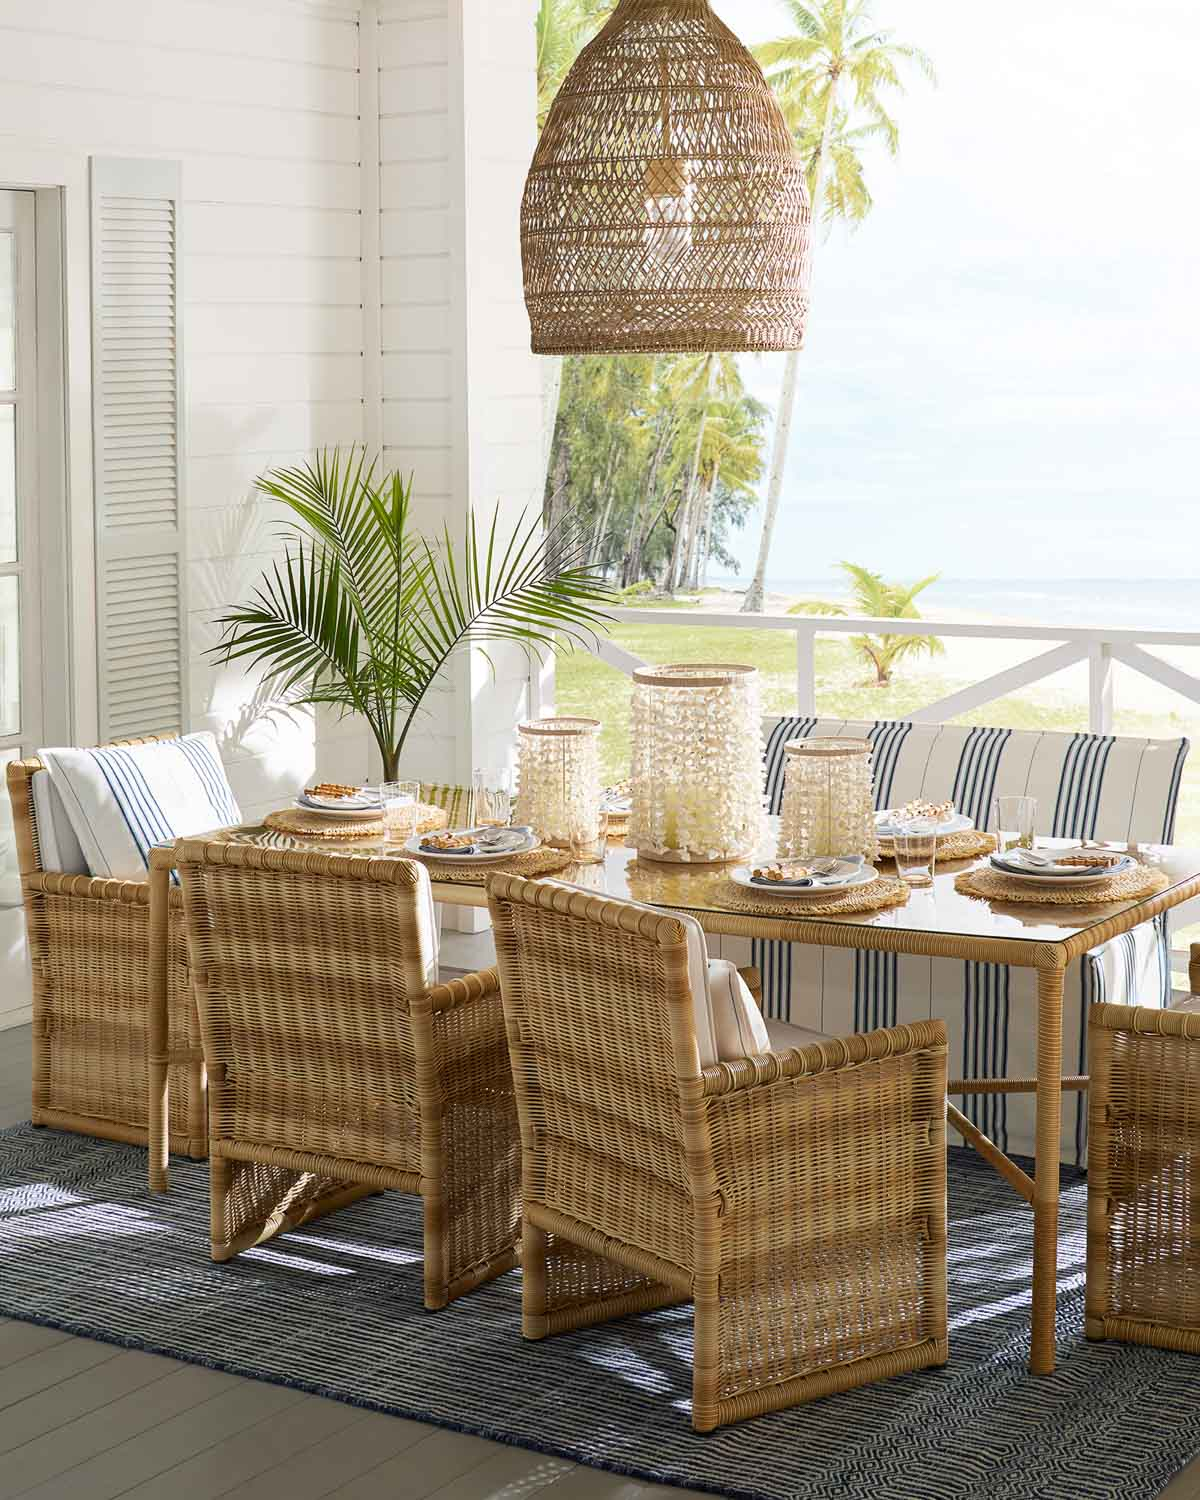 More outdoor entertaining will be trending in 2021!